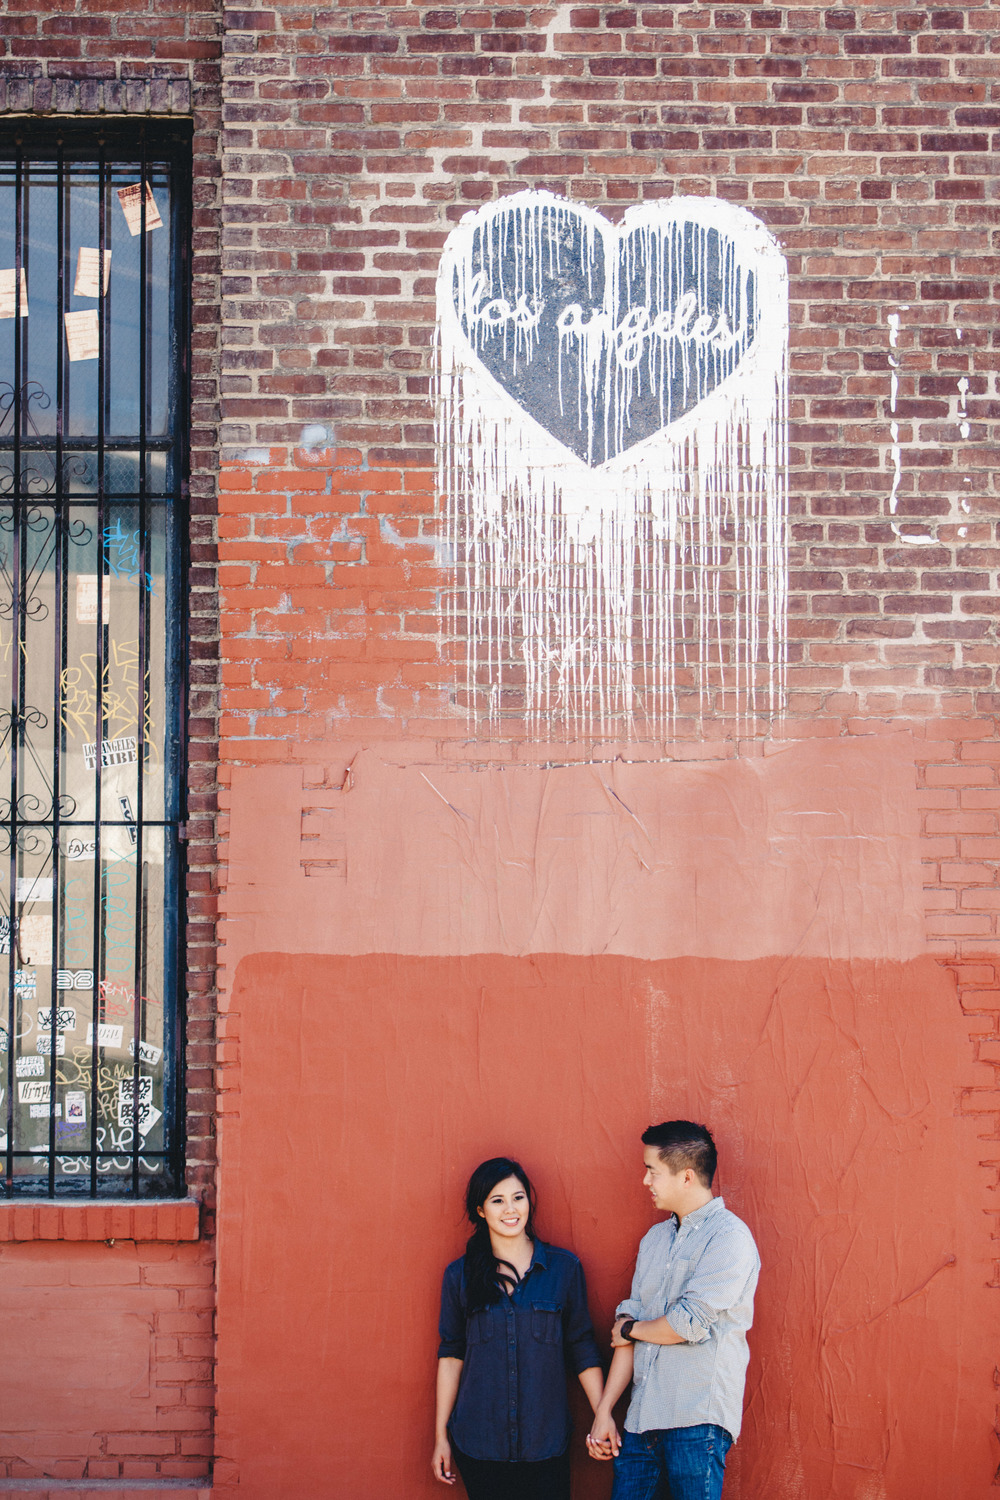 Los_Angeles_Orange_County_Photography_Photographer_Naydia_Christian_engagement 0836.jpg